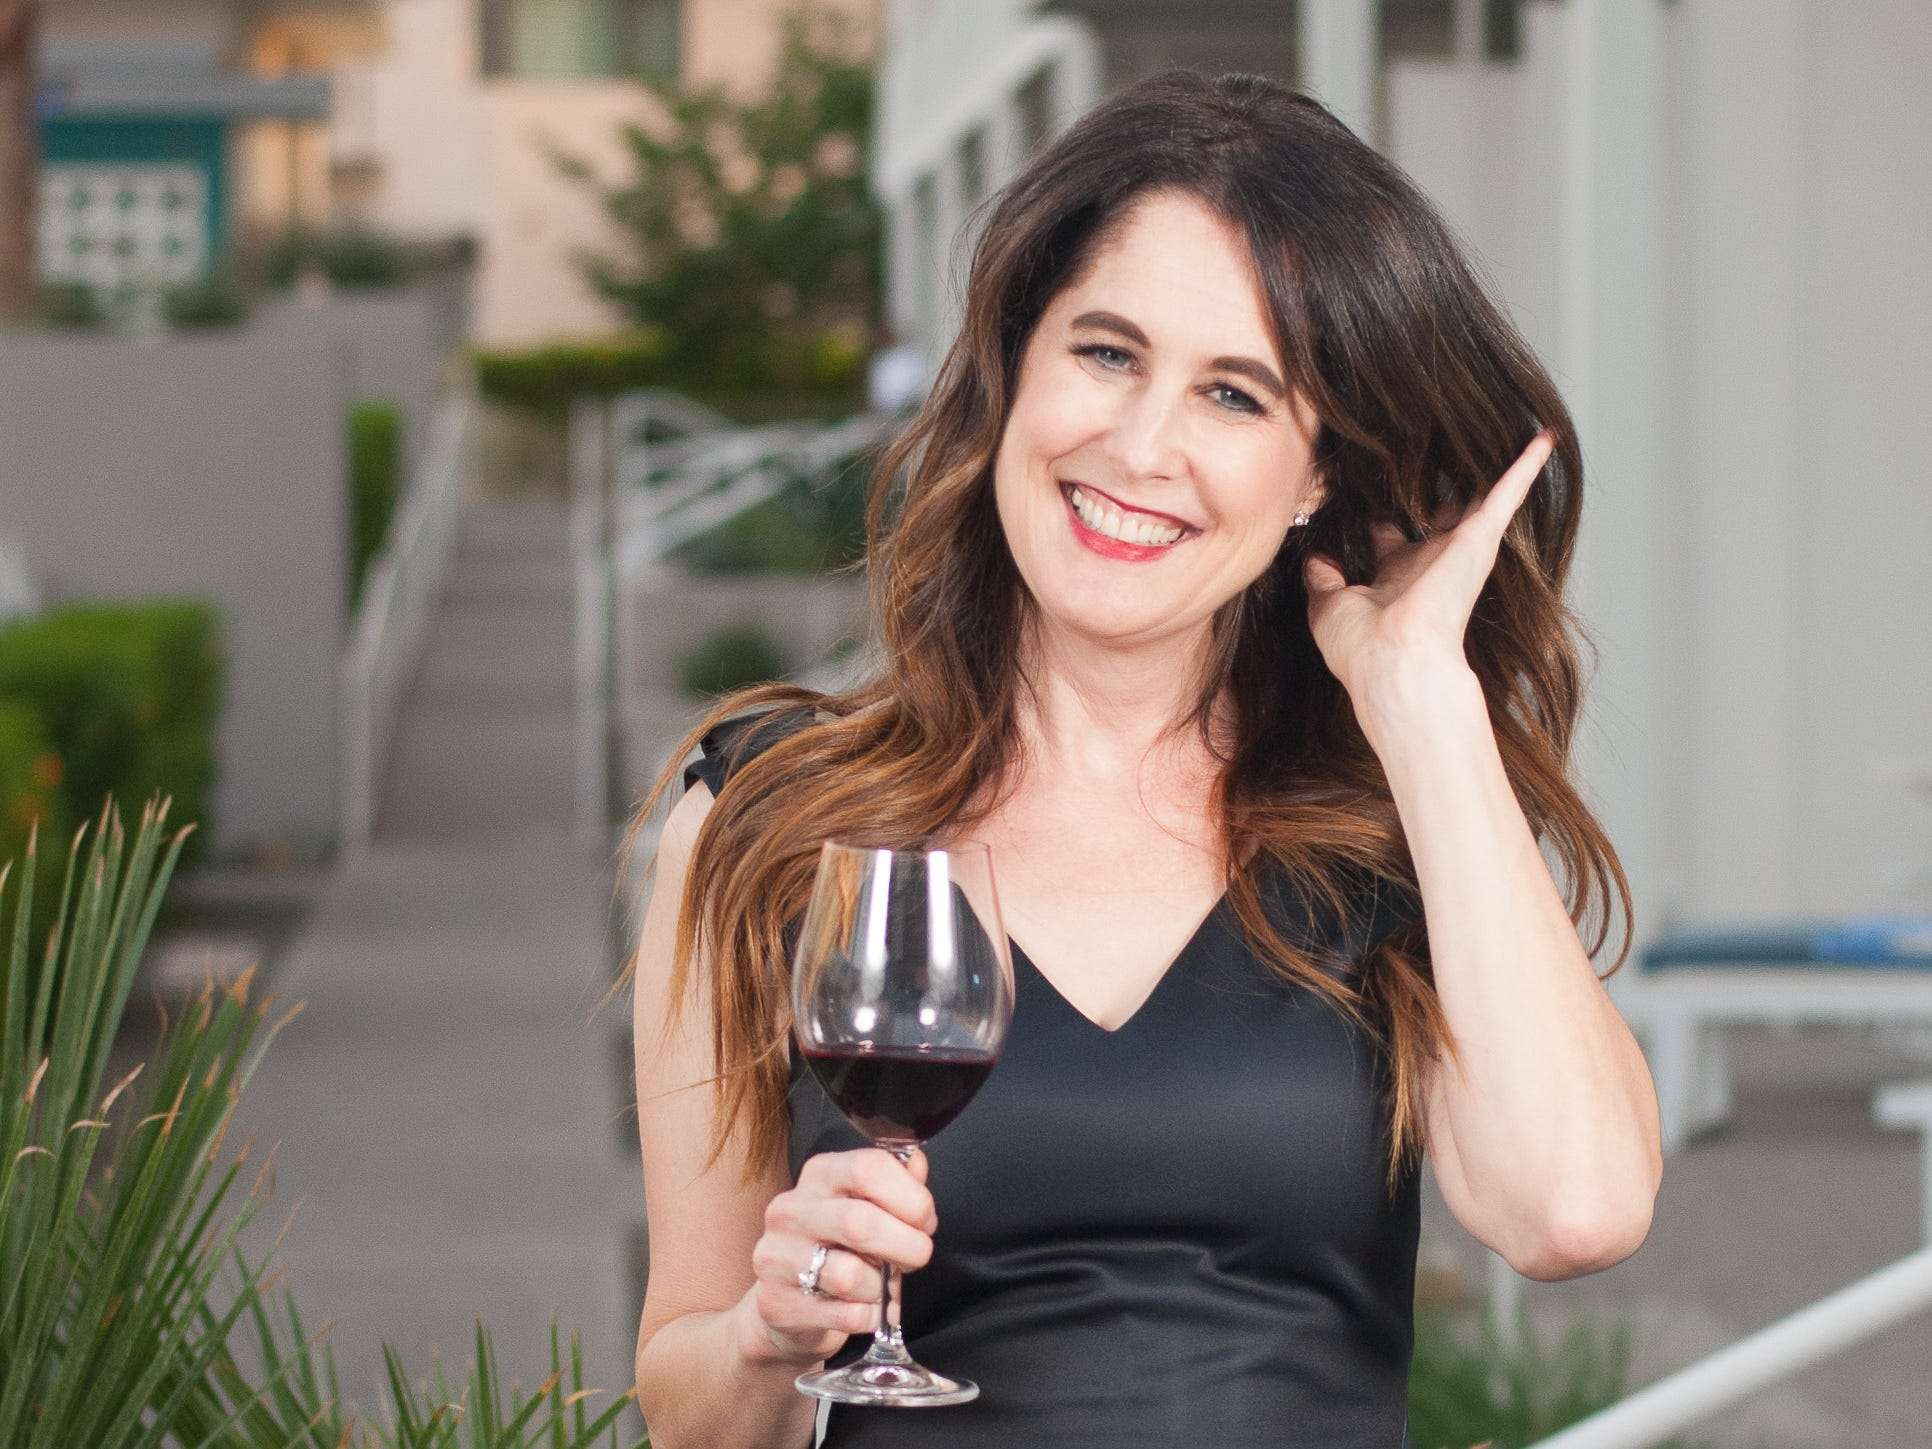 I'm a wine consultant who creates custom tastings and dinners for private clients. Here's how I transitioned from writing about wine to running my own business.